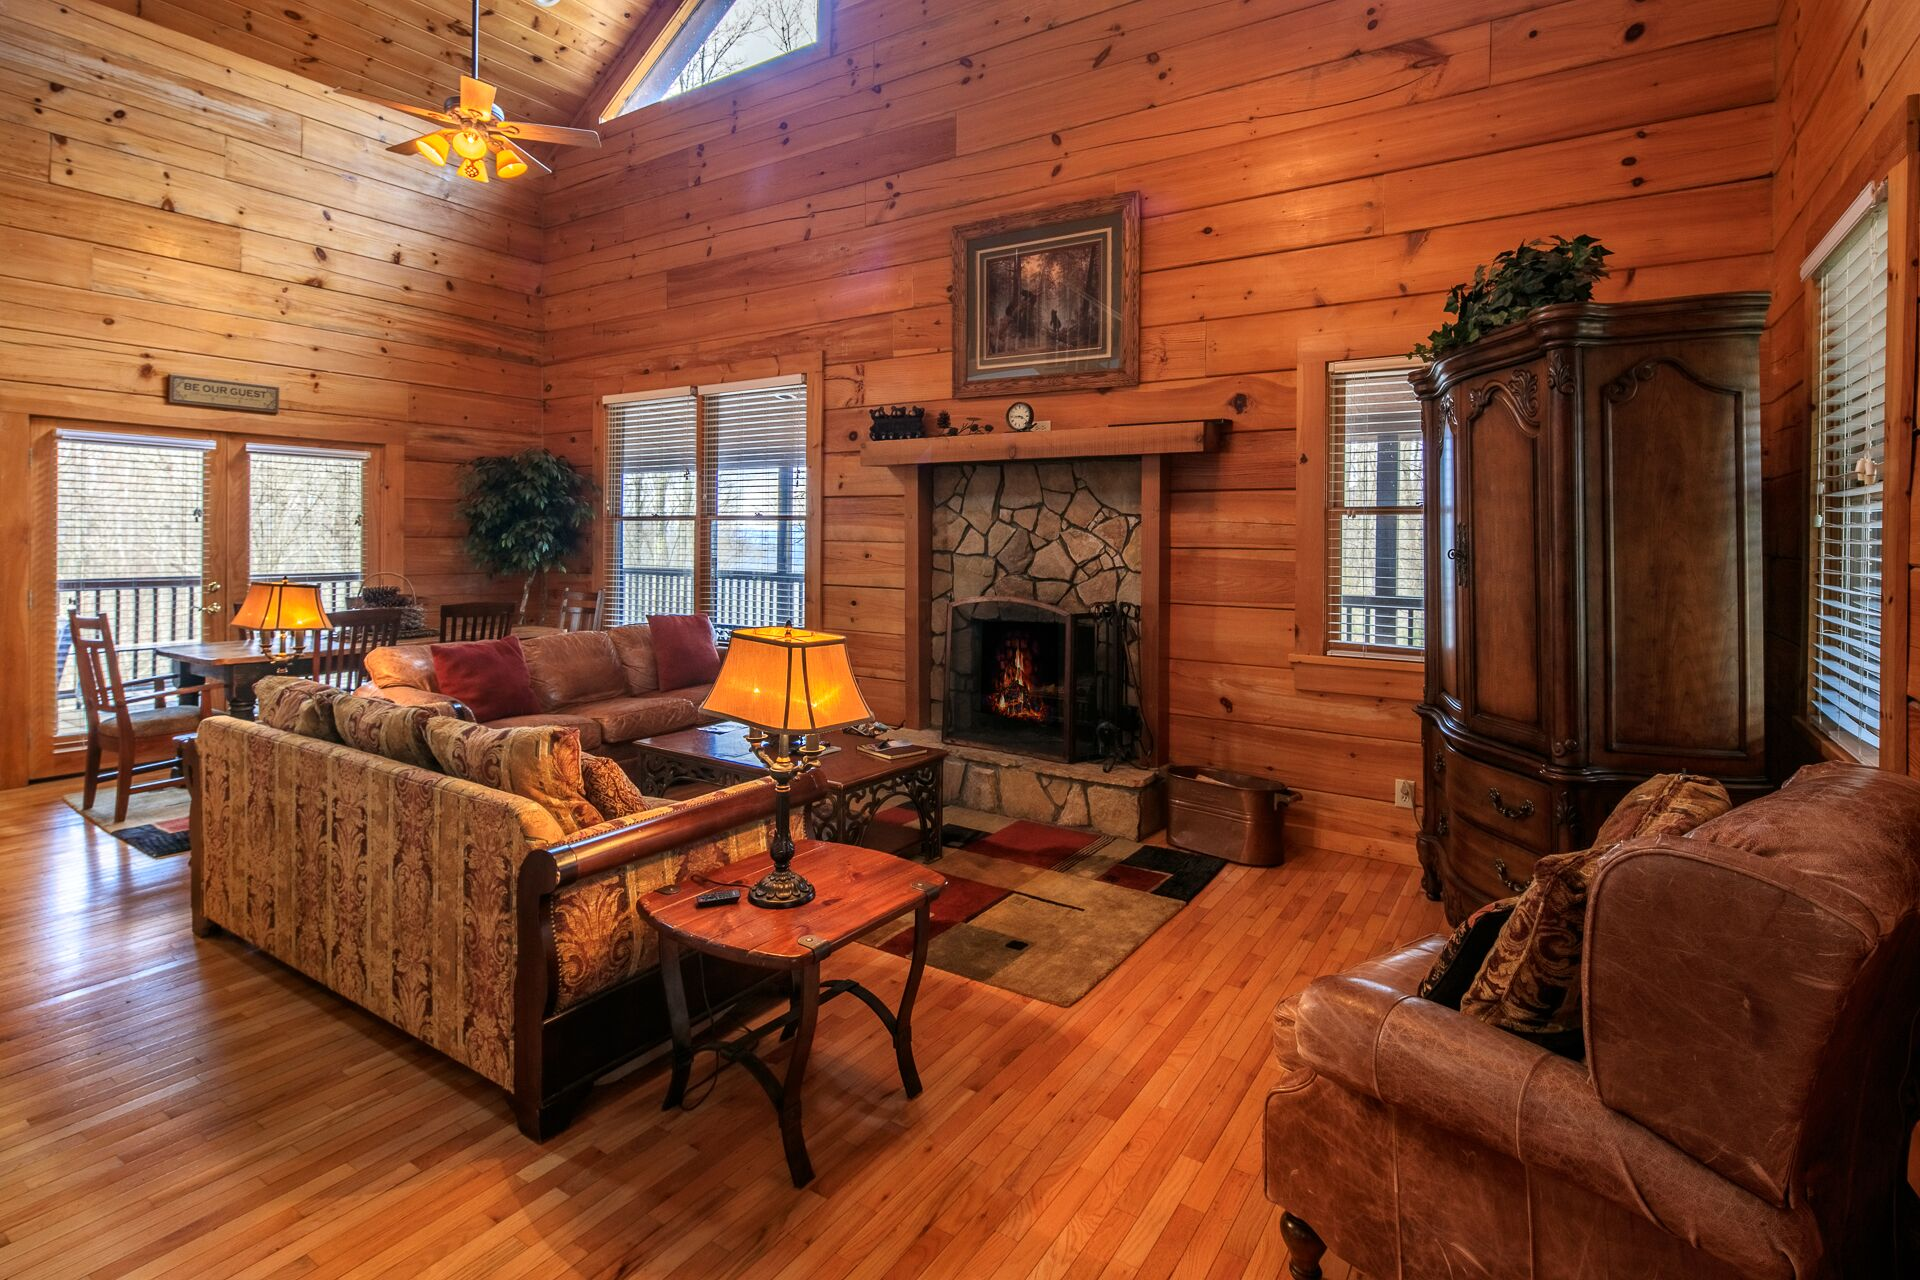 Living room area with fireplace #fireplace